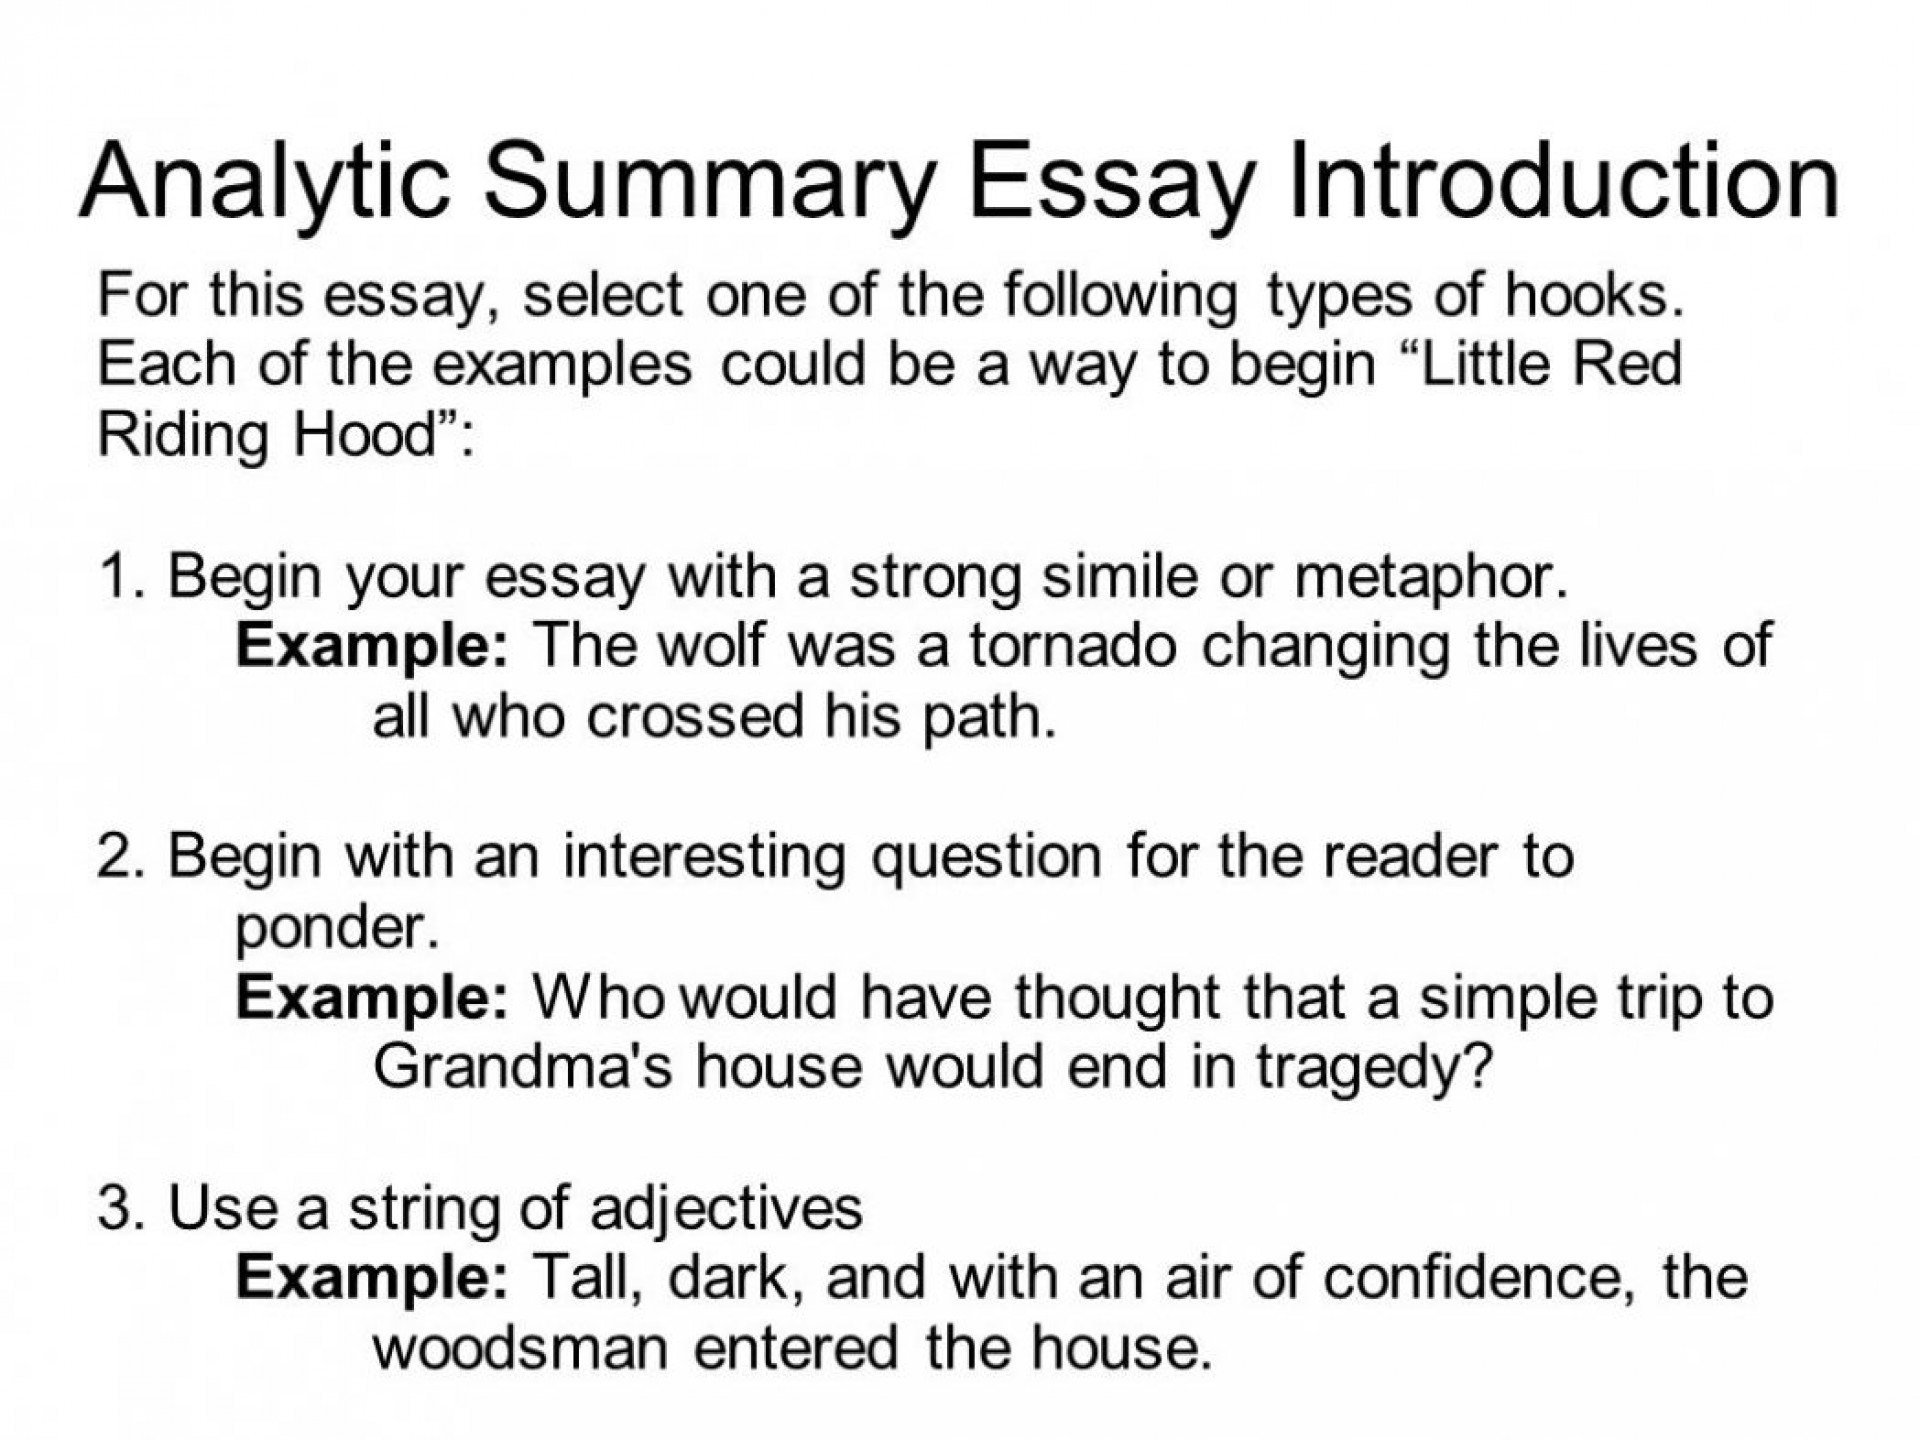 021 Essay Example Hooks Hook Ideas Cover Letter The In Writing Sli An Define Transitional Type Of Wonderful About Dreams Examples 1920